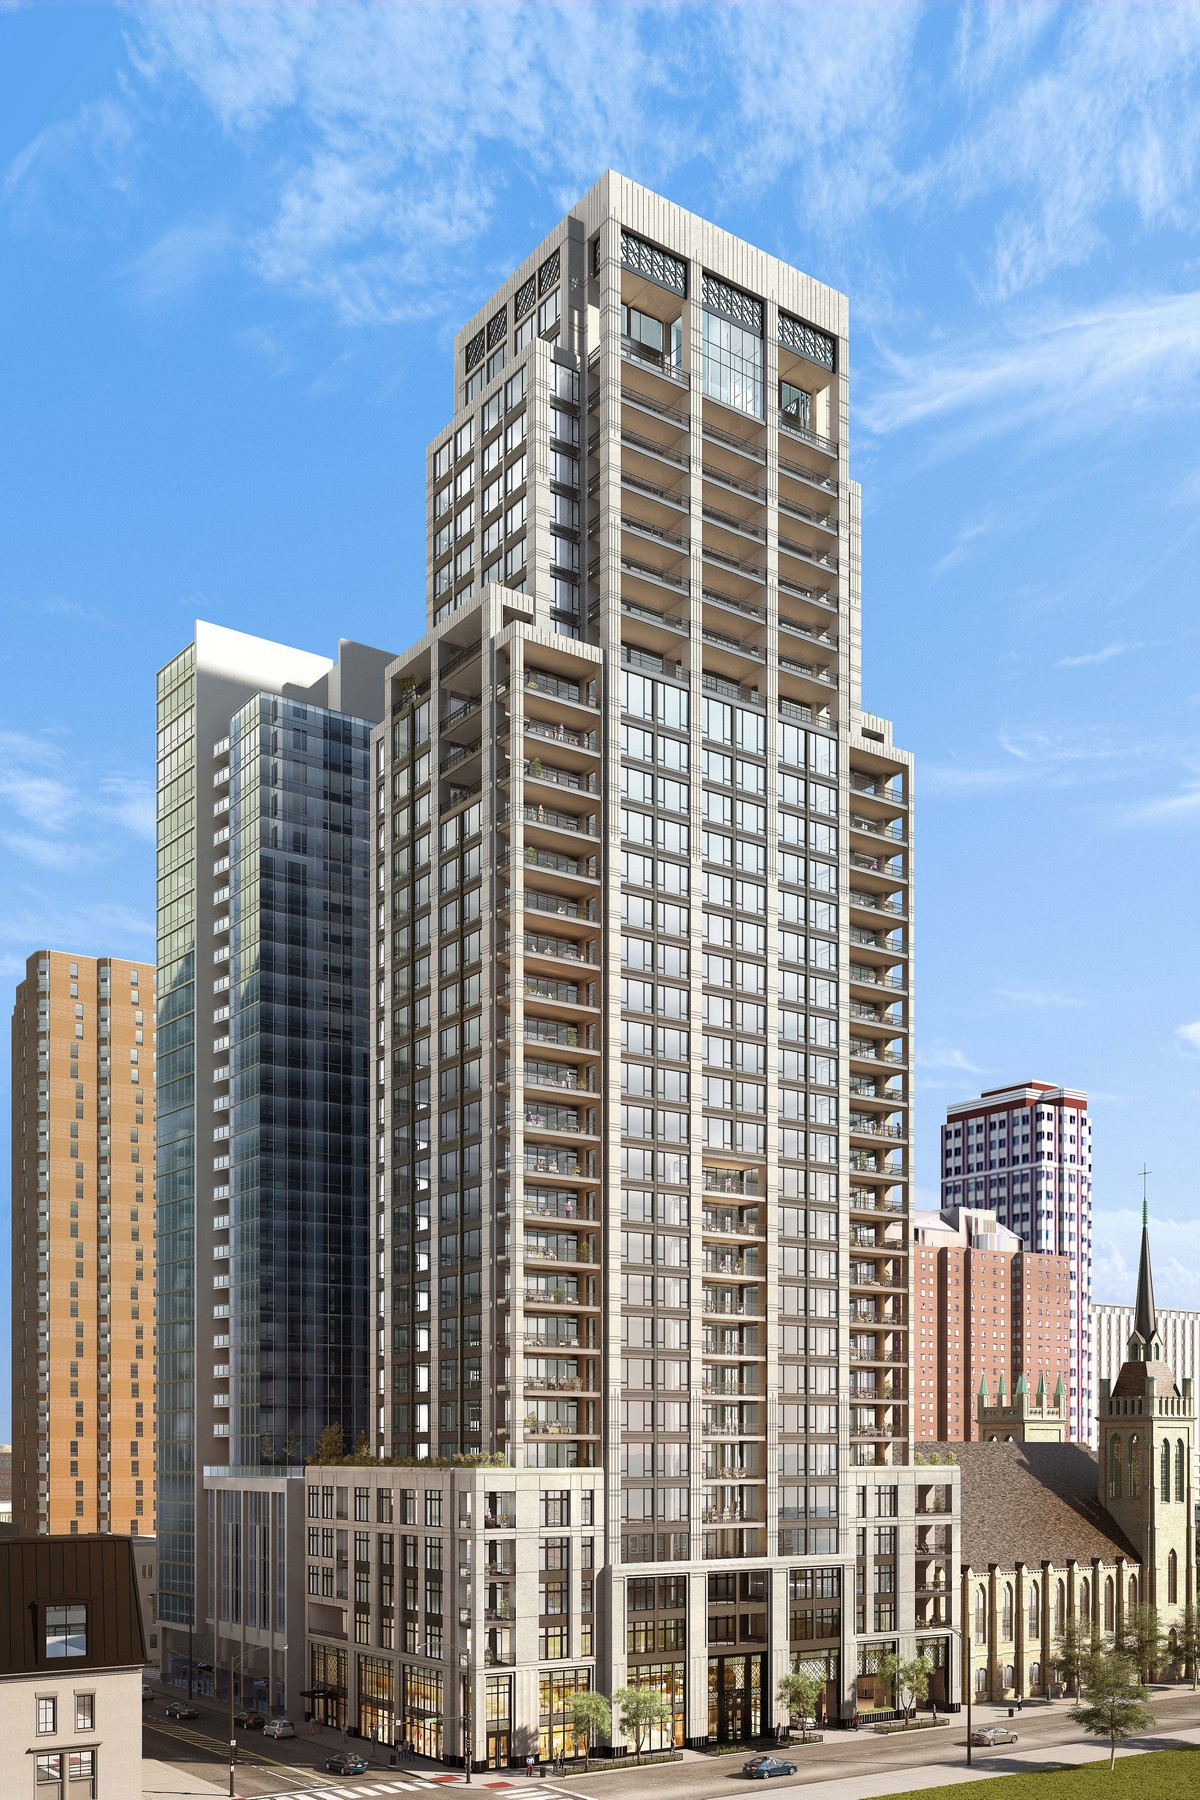 Кондоминиум для того Продажа на The Gold Coast's Newest and Finest Building 9 W Walton Street Unit 2201 Near North Side, Chicago, Иллинойс, 60610 Соединенные Штаты